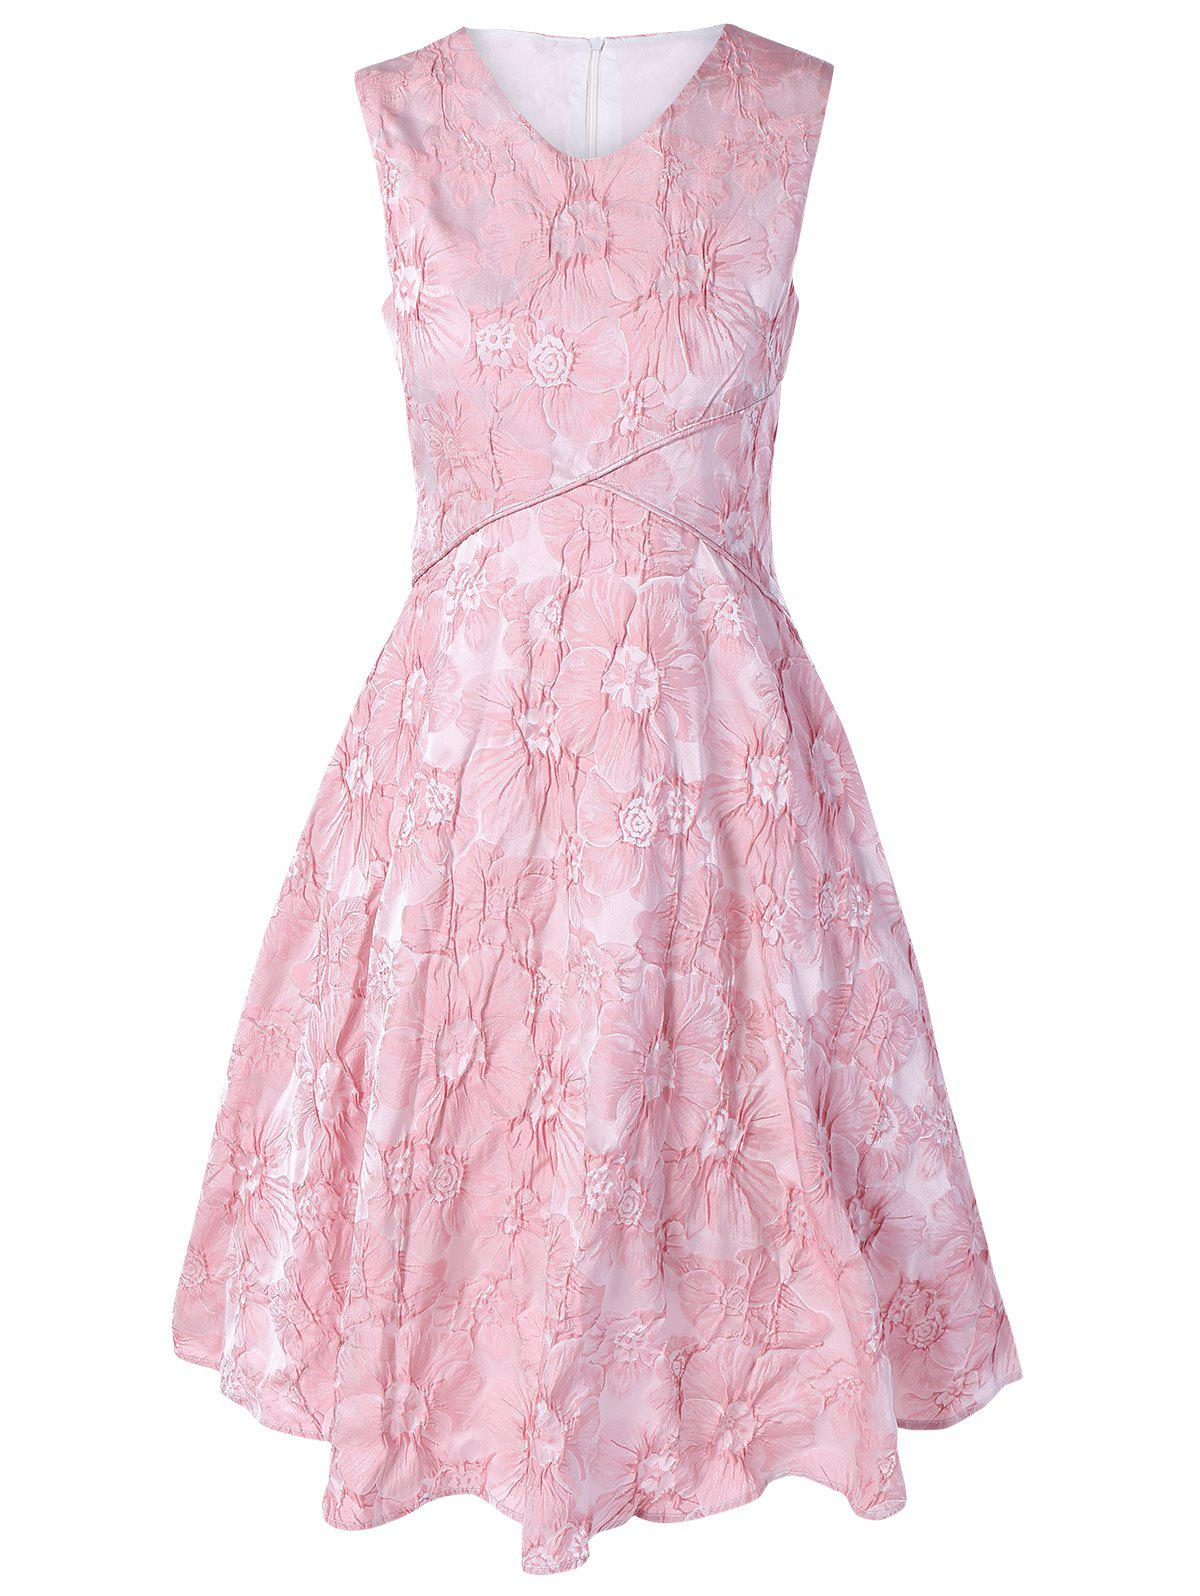 Sleeveless Floral Jacquard Dress - PINK XL